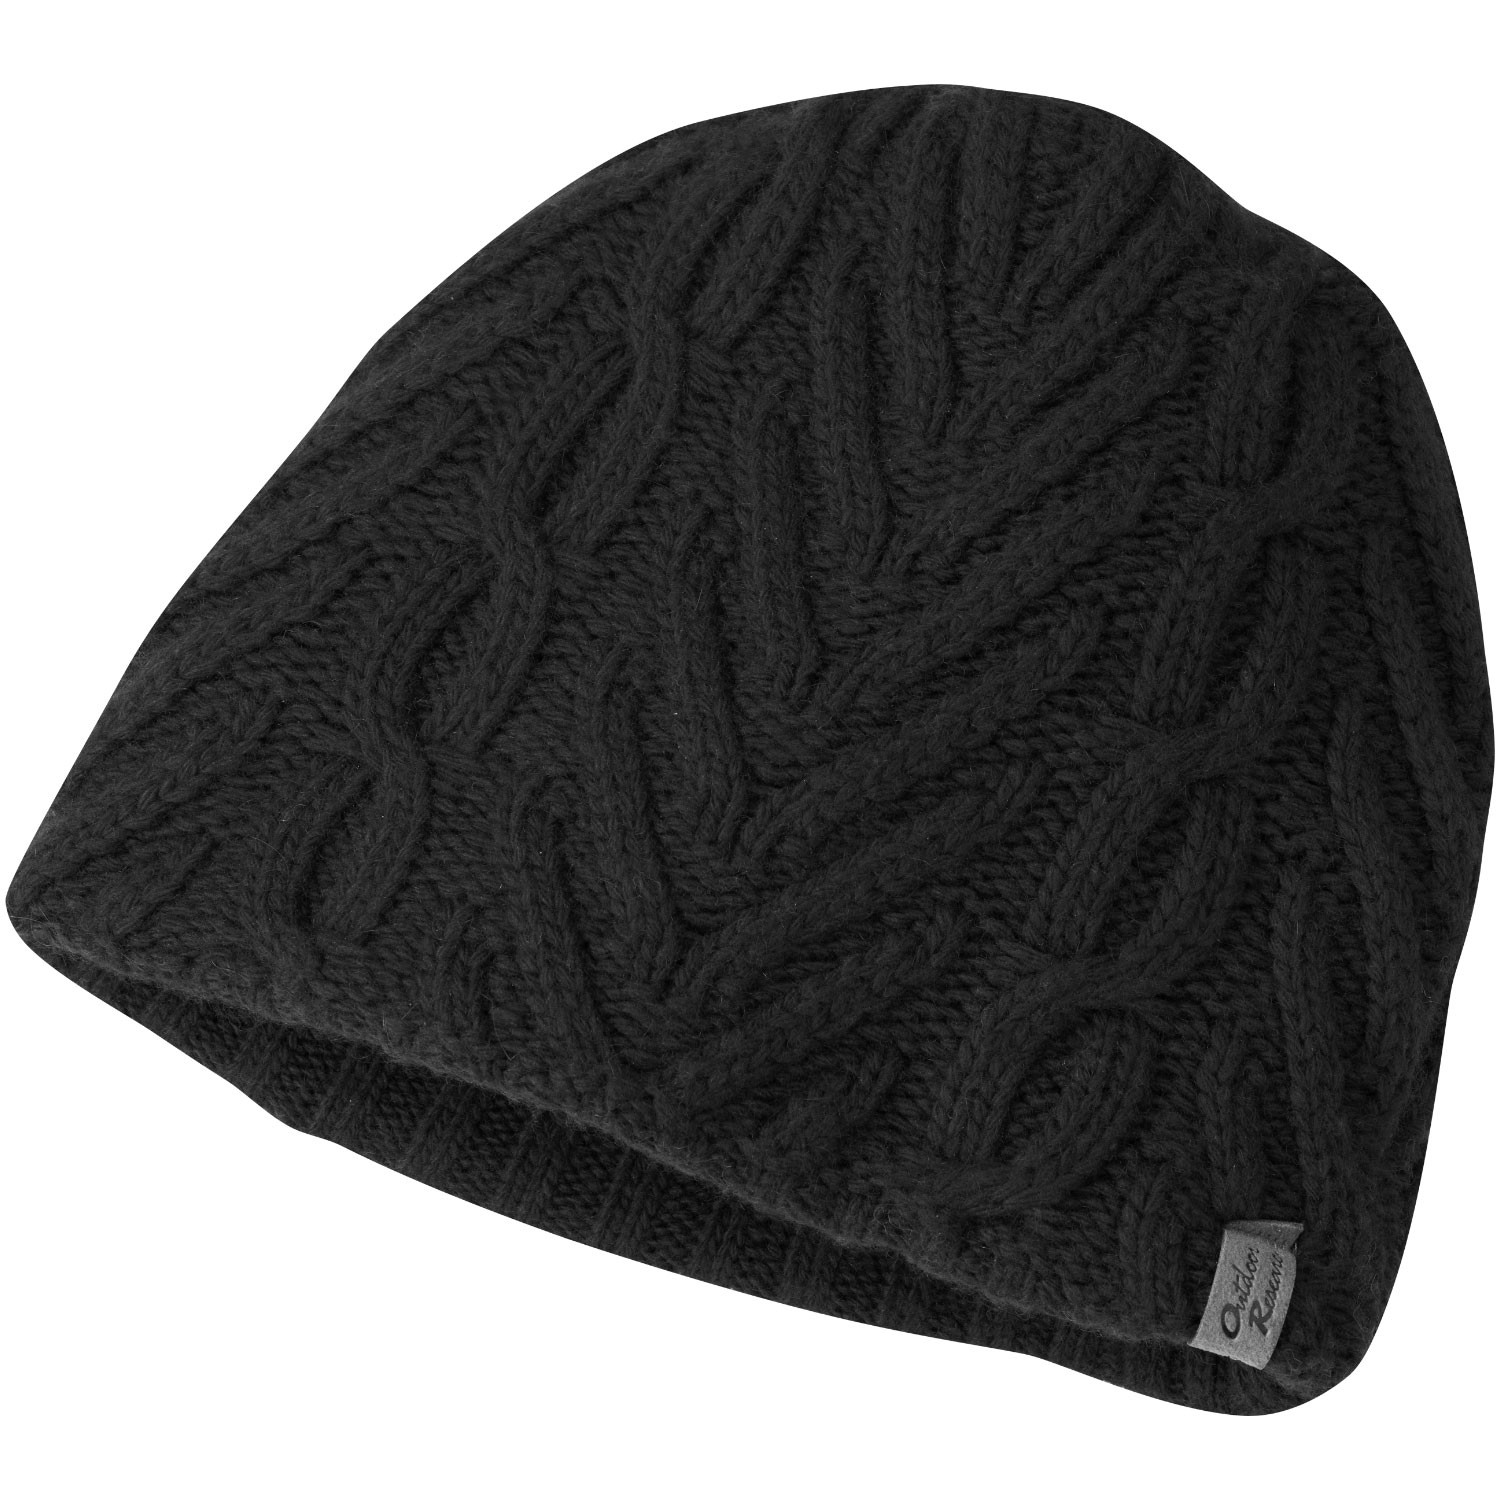 Outdoor Research Jules Beanie - Black